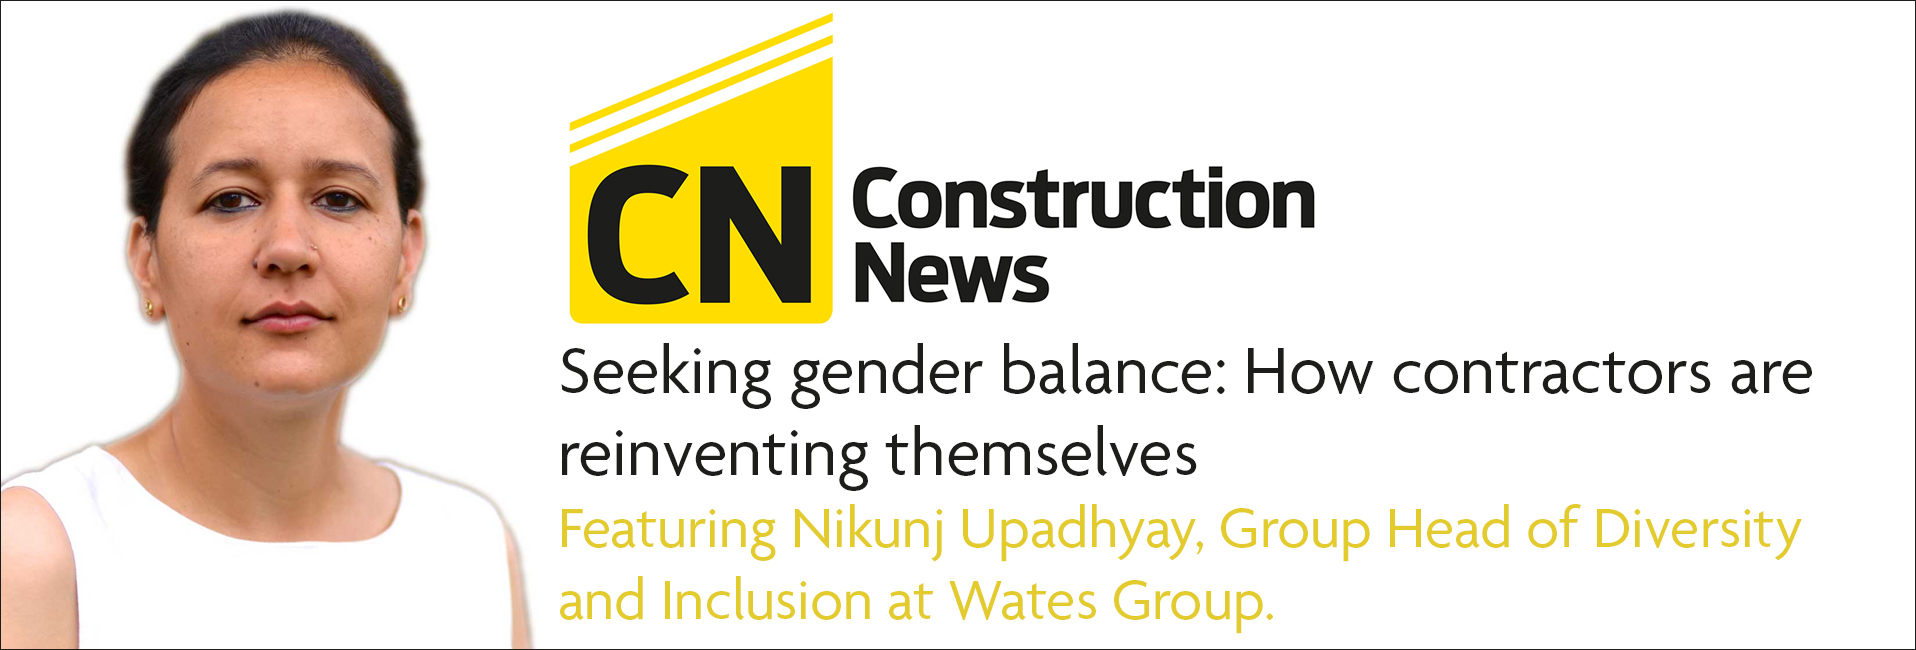 Construction news - featuring Nikunj Upadhyay  Group Head of Diversity and Inclusion